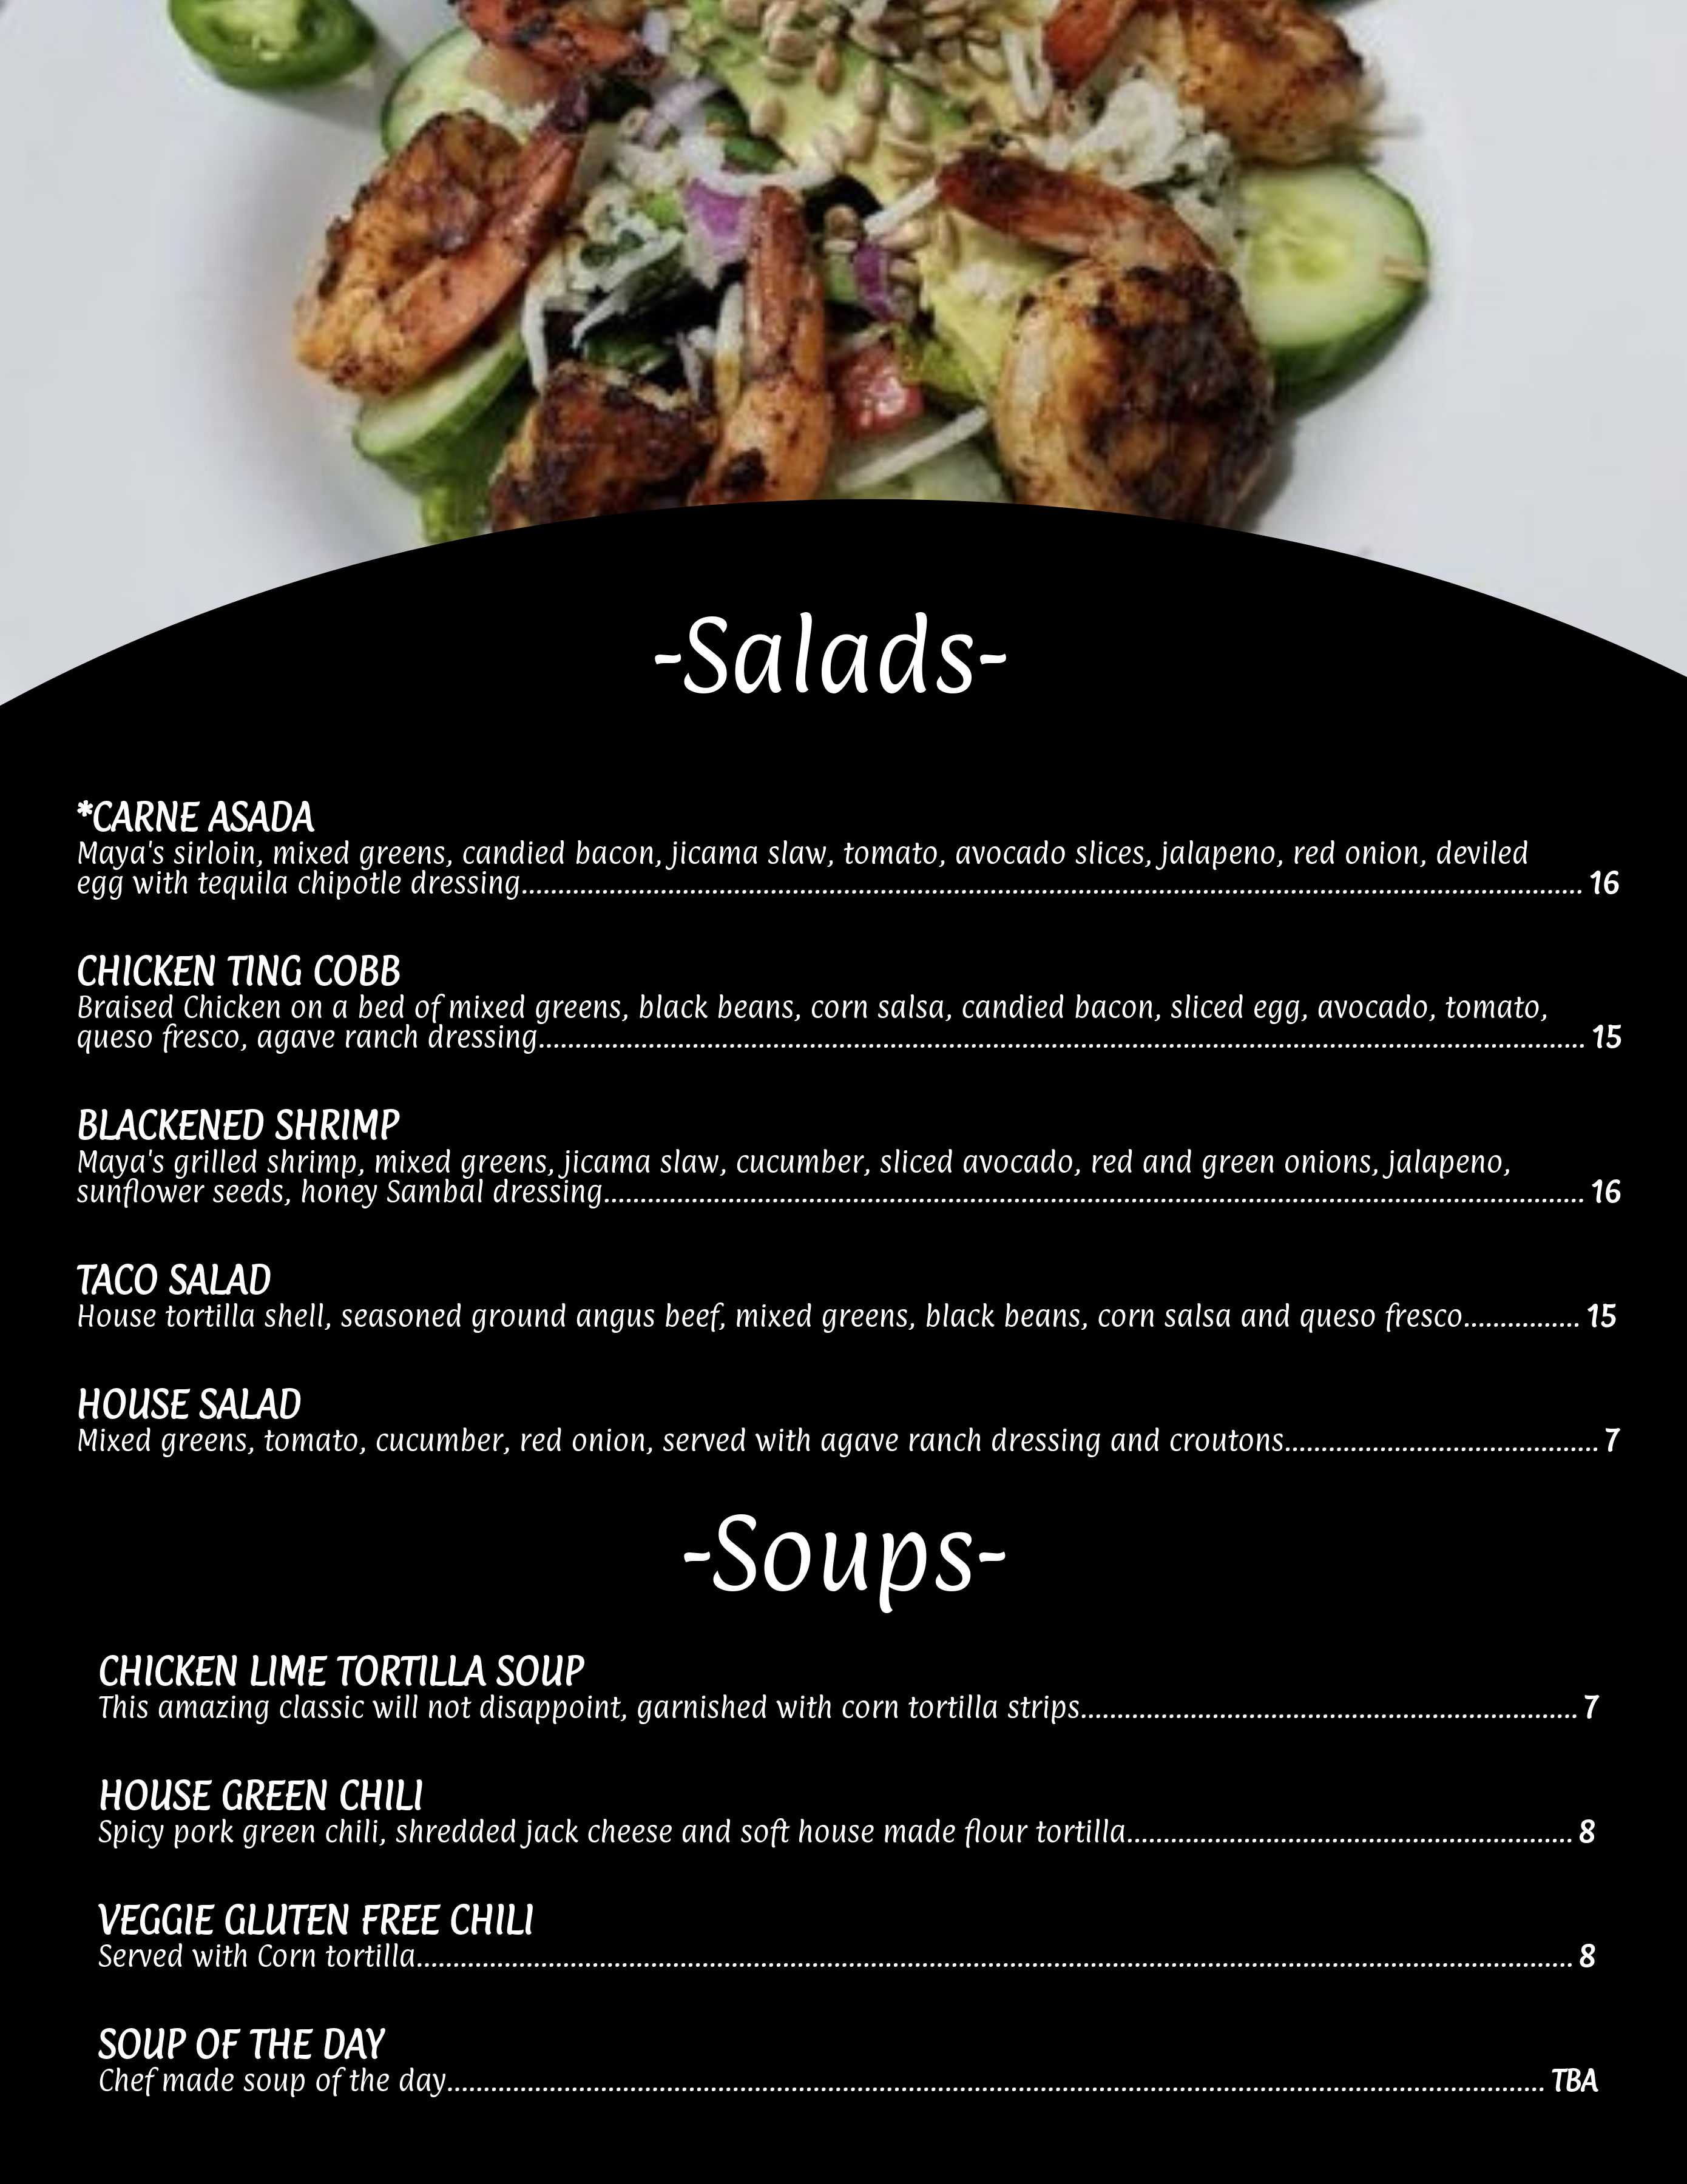 Salad Soup menu